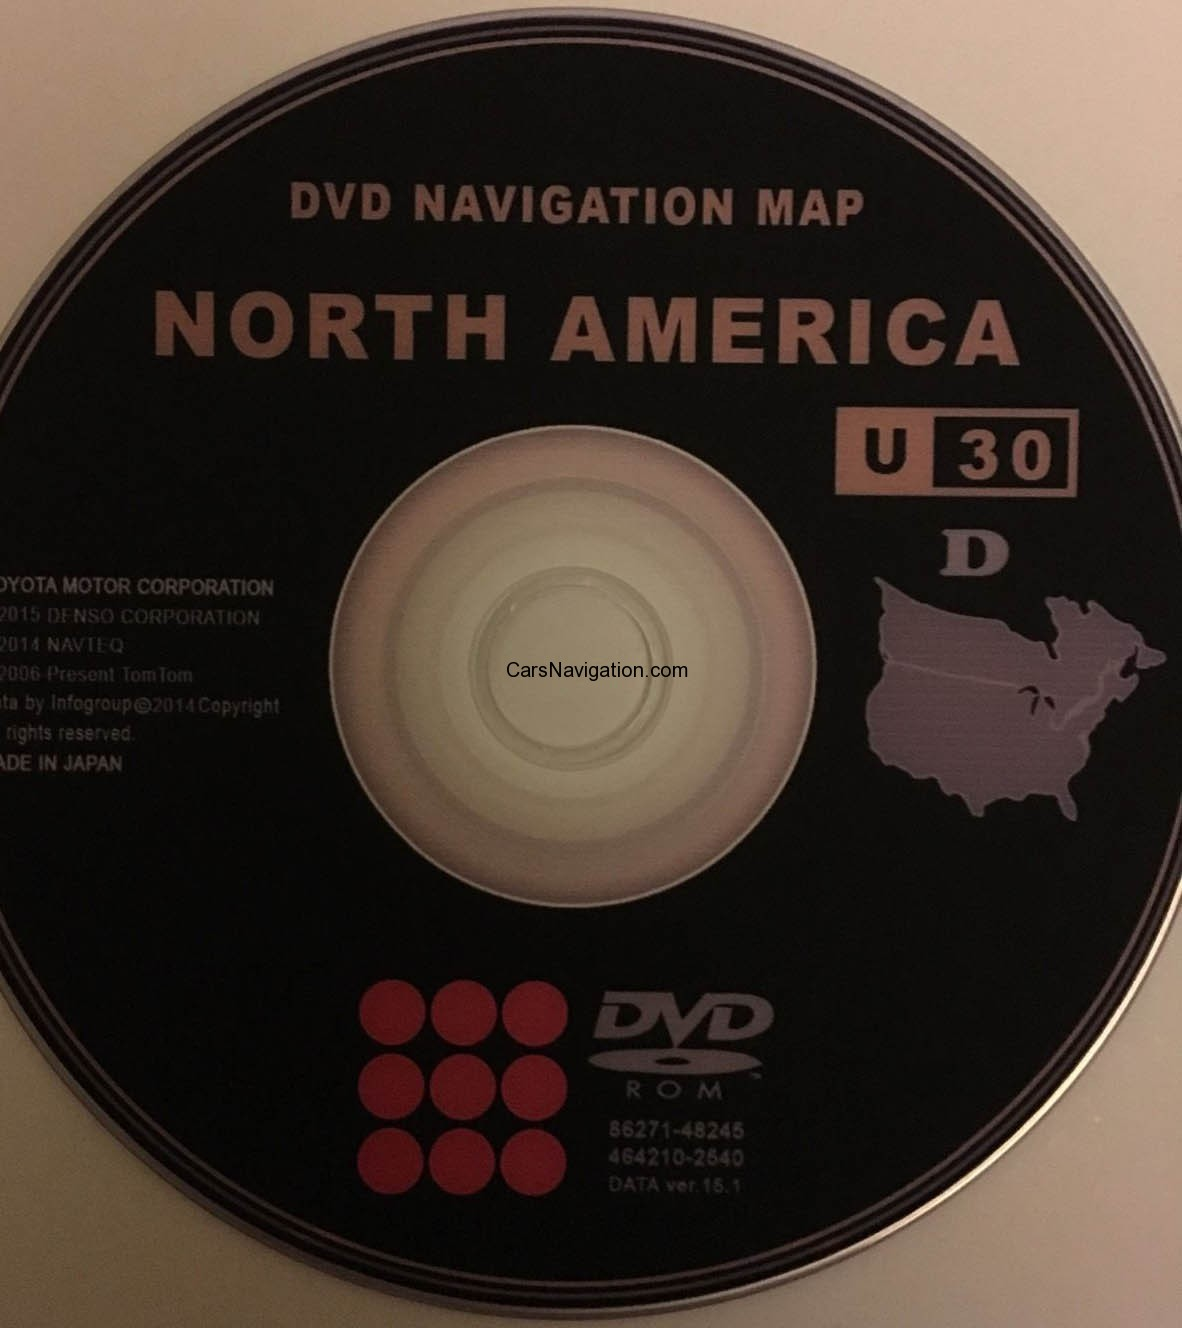 2016 Toyota Lexus Gps Navigation Dvd North American U 30 V 15 1 Gen 4 Car Navigation Dvd Maps